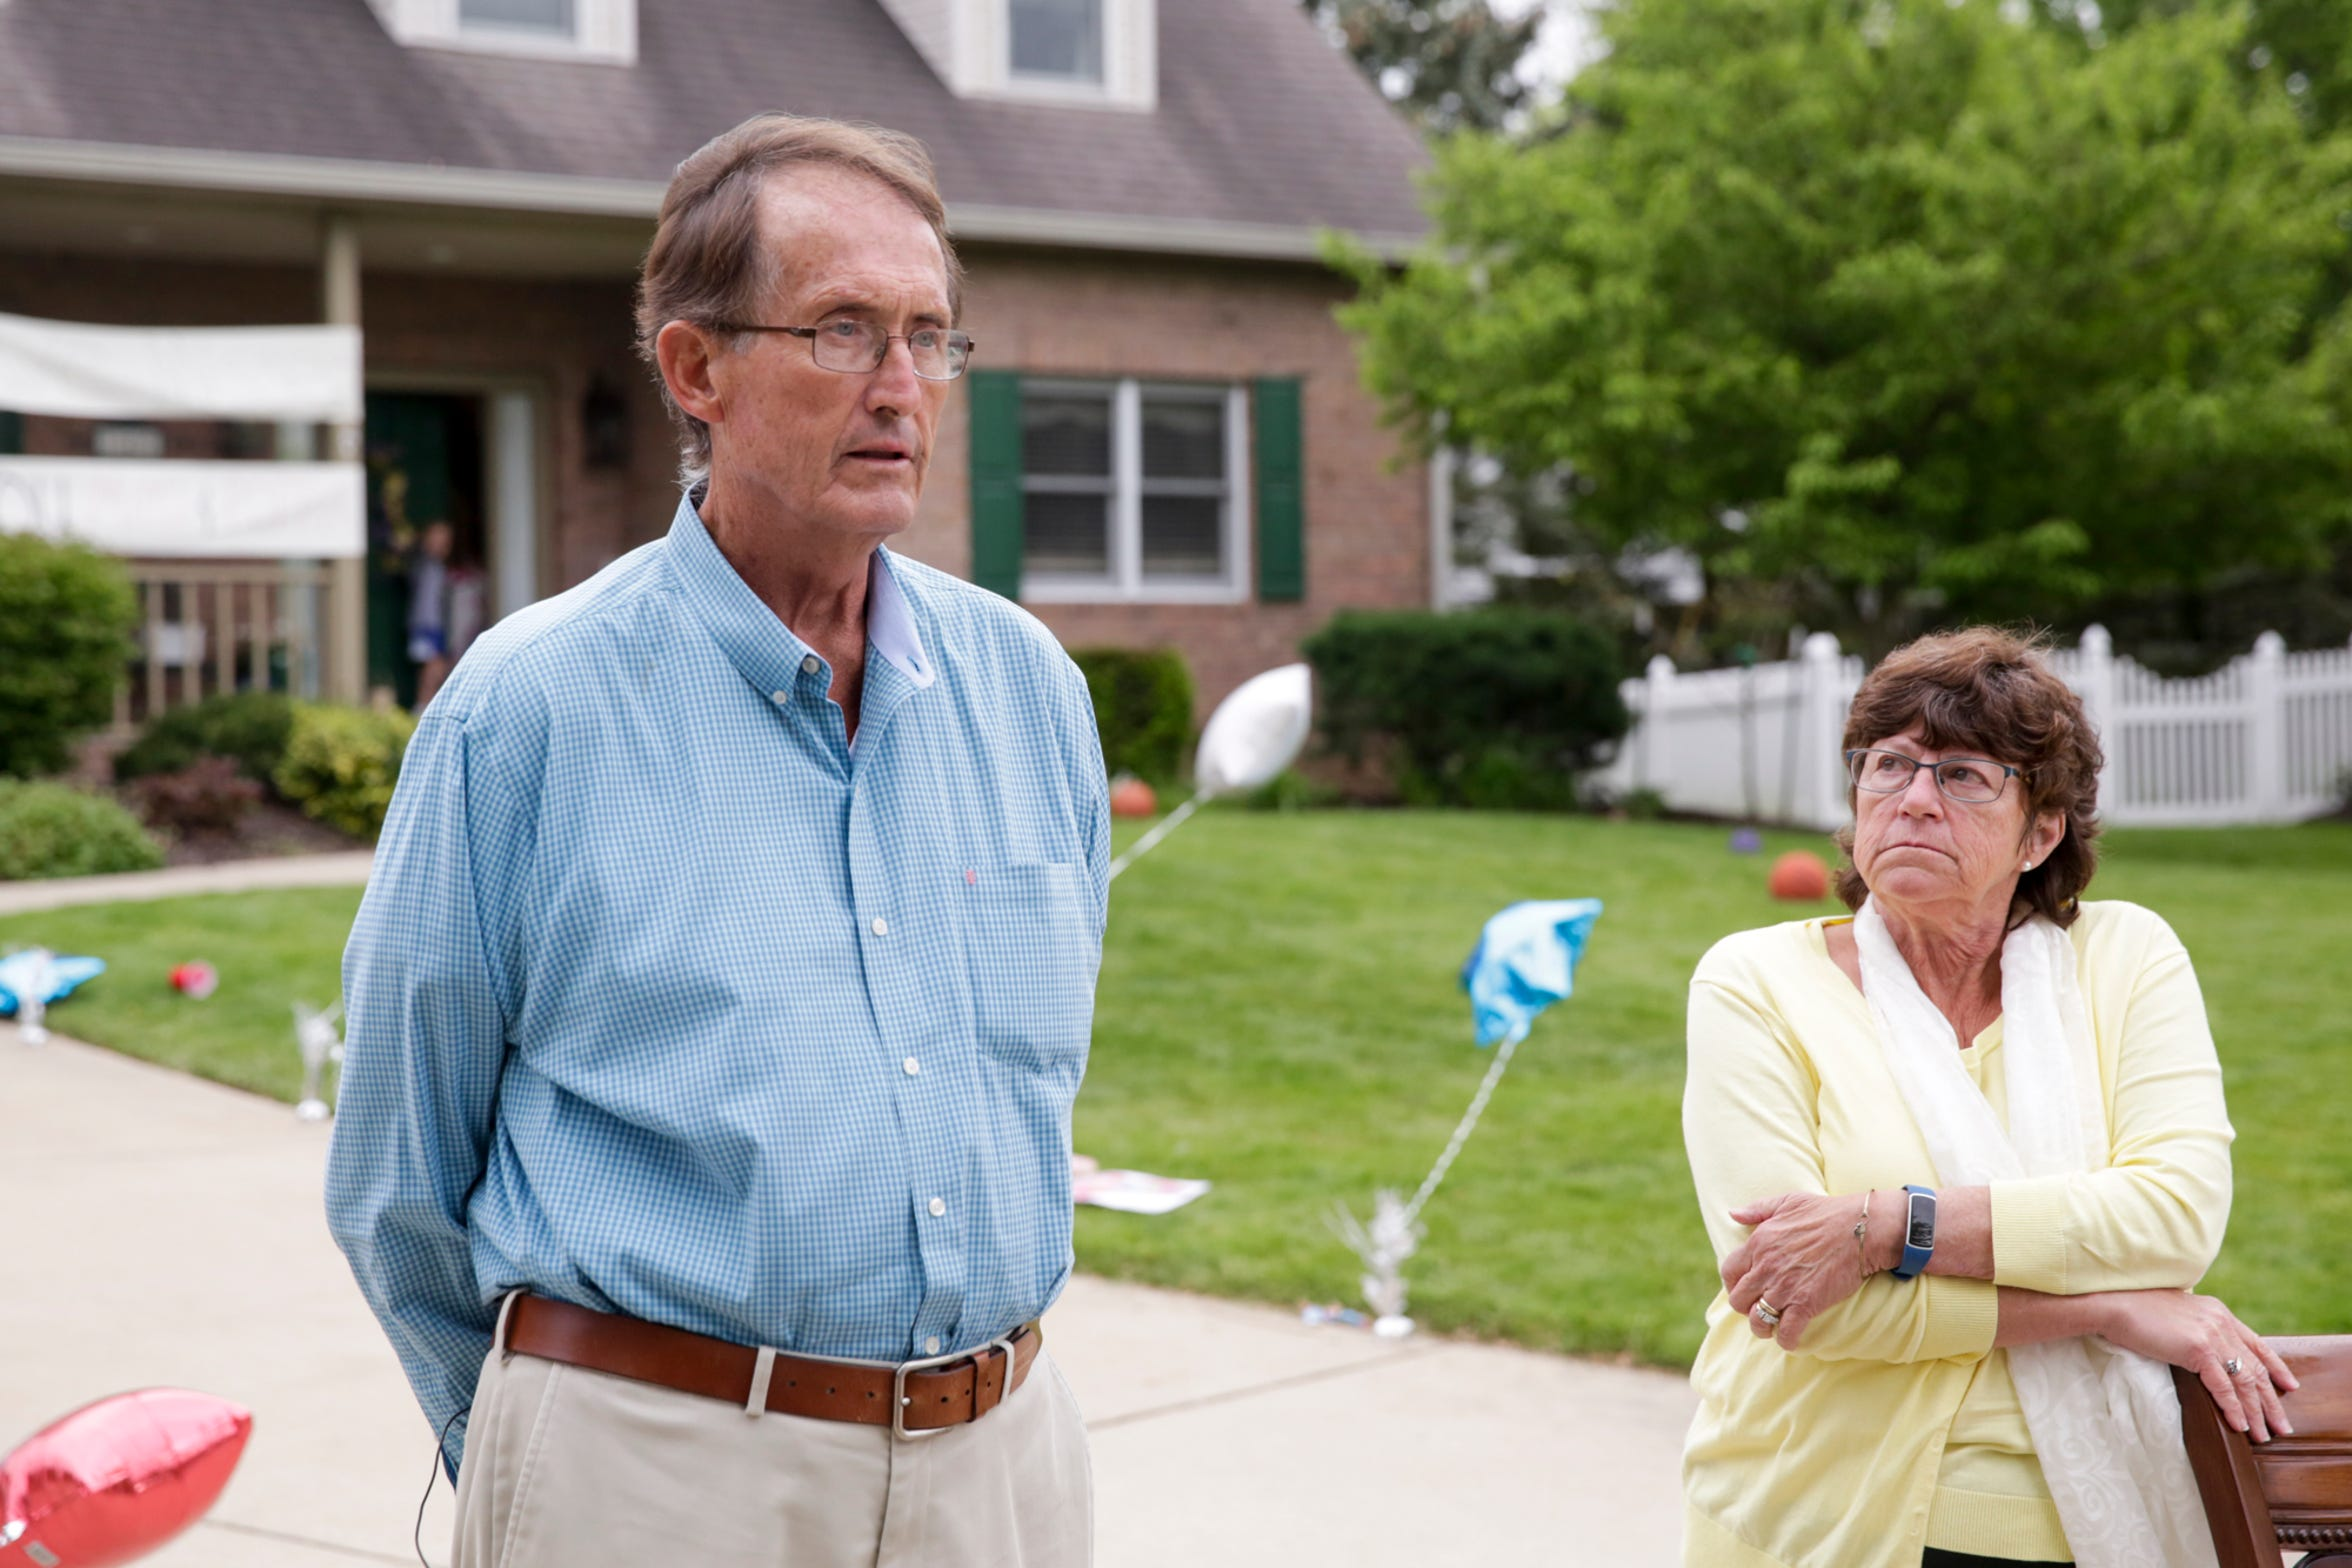 Rob Kochon, left, recounts his battle with COVID-19 while talking with members of the media with his wife, Carol, by his side, Thursday, May 21, 2020 in West Lafayette. Kochon spent 50 days in a Florida hospital, 26 on a ventilator, after contracting COVID-19.